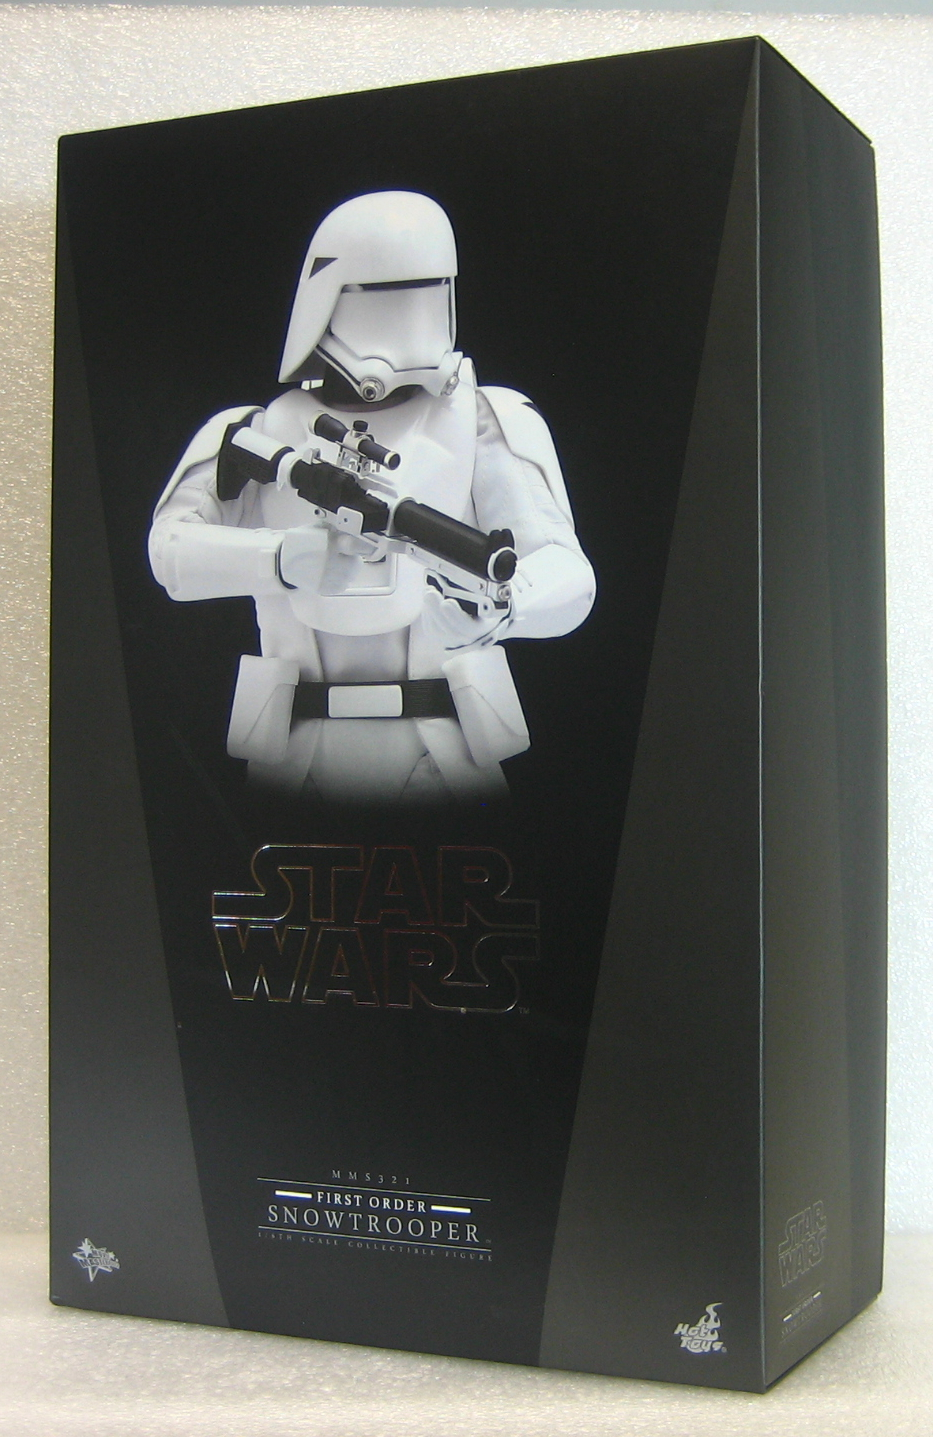 hot toys star wars first order snowtrooper